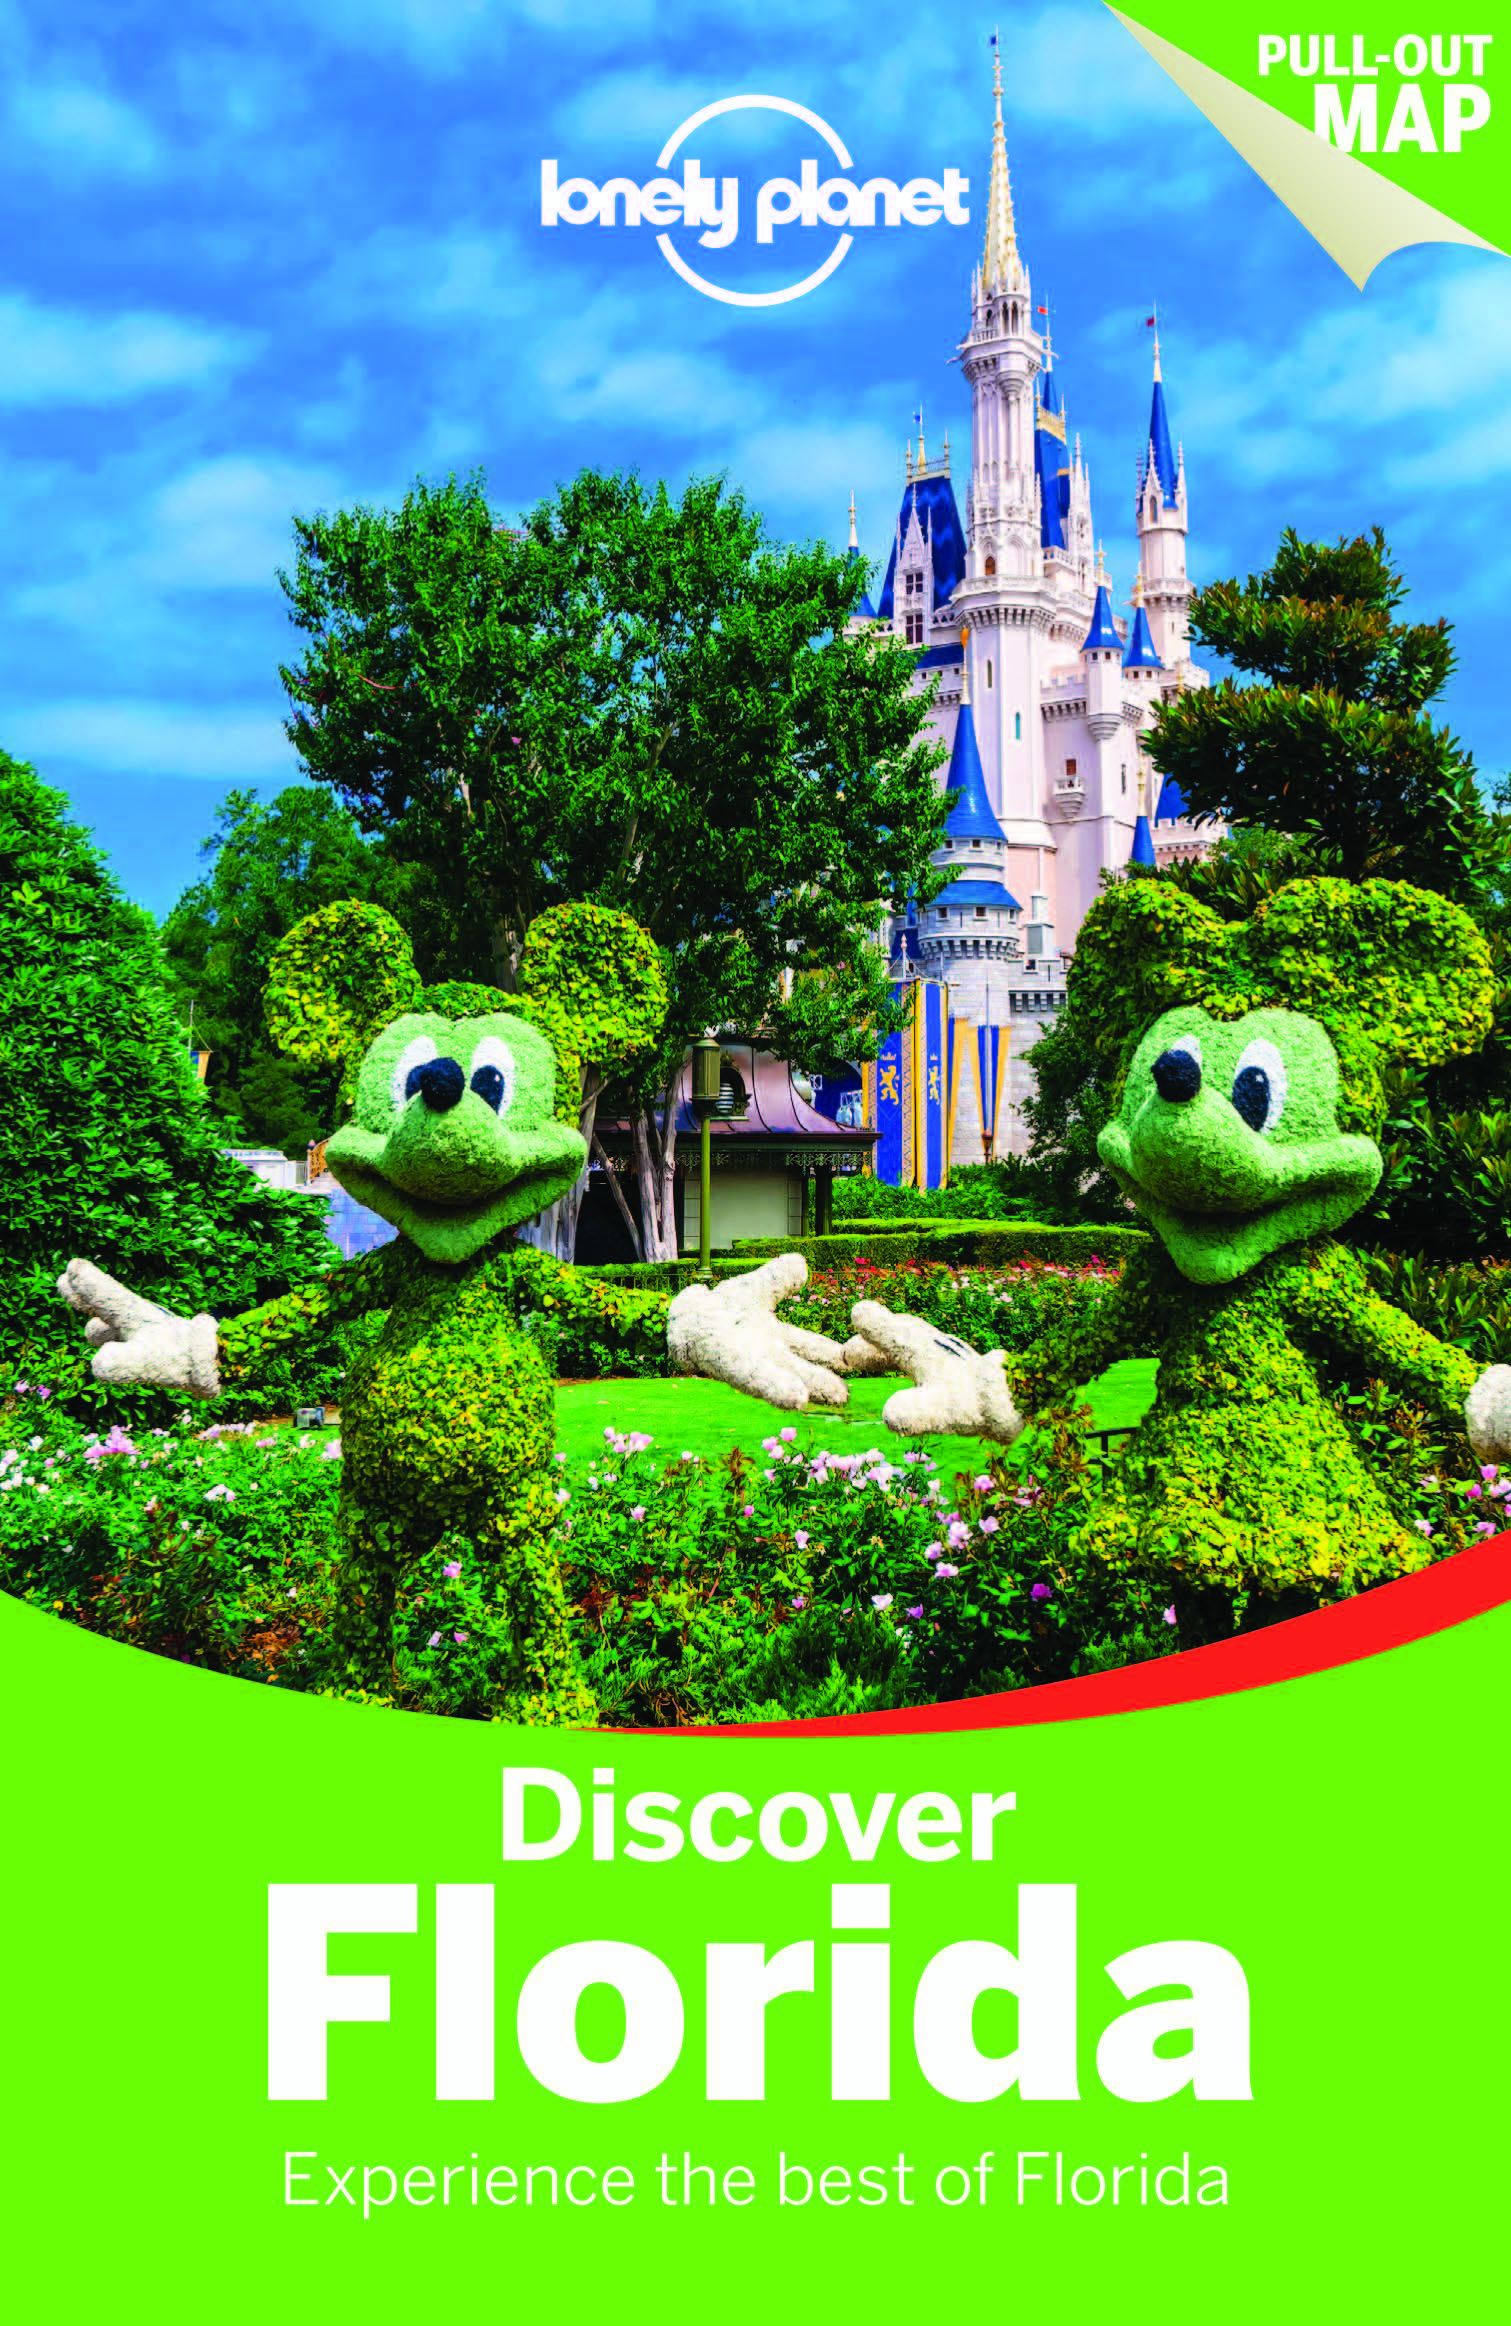 Discover Florida průvodce 2nd 2015 Lonely Planet